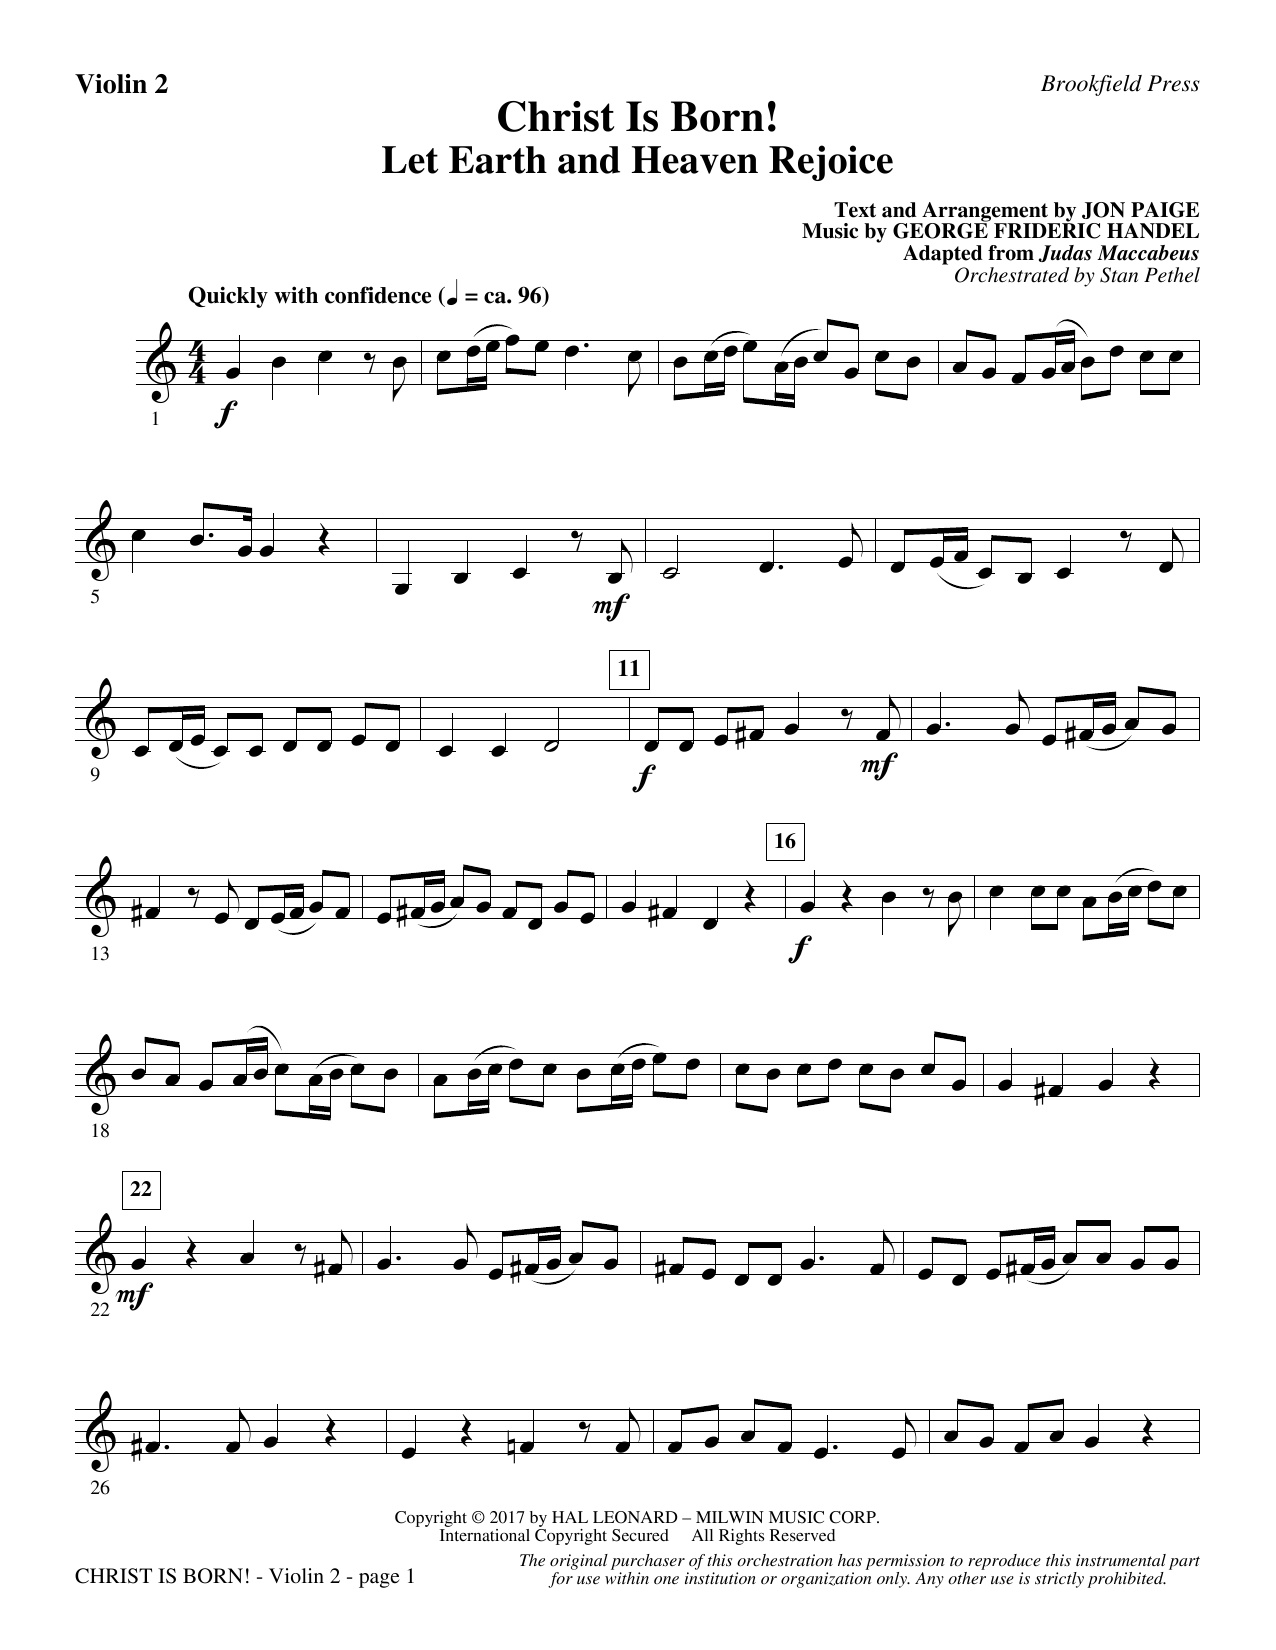 Jon Paige Christ Is Born! - Violin 2 sheet music notes and chords. Download Printable PDF.